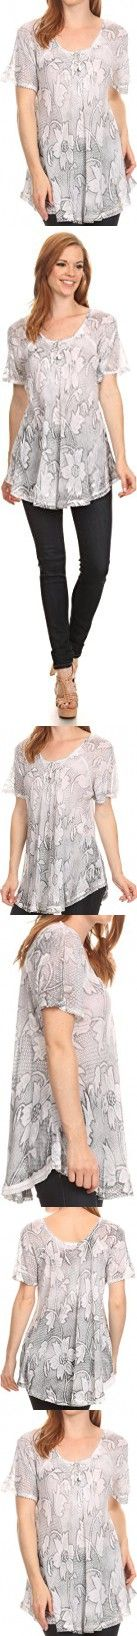 Sakkas 16788 - Maliky Wide Corset Neck Floral Embroidered Cap Sleeve Blouse Top Shirt - White - OSP